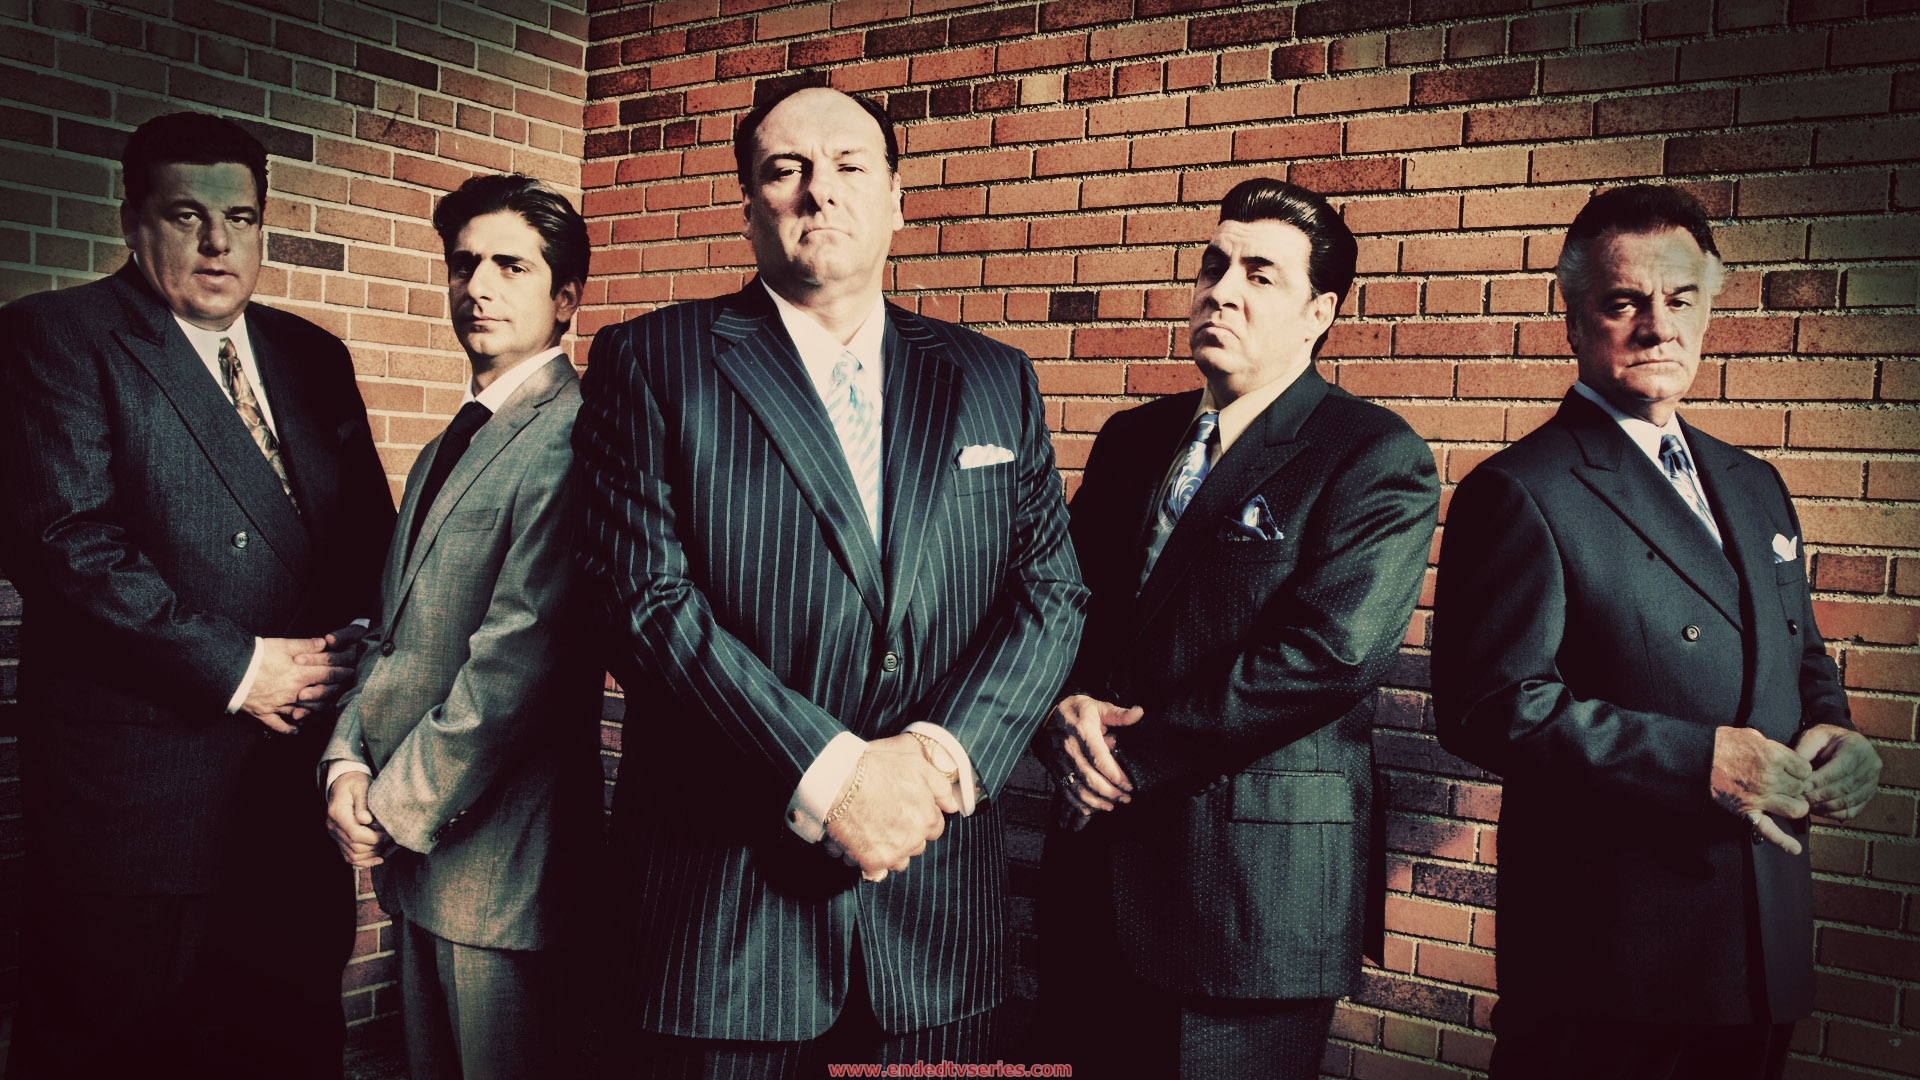 the sopranos pasquale parisi patsy dan grimaldi patsy is tony s cousin and the accountant for his crew in addition to his accounting duties he also obtains